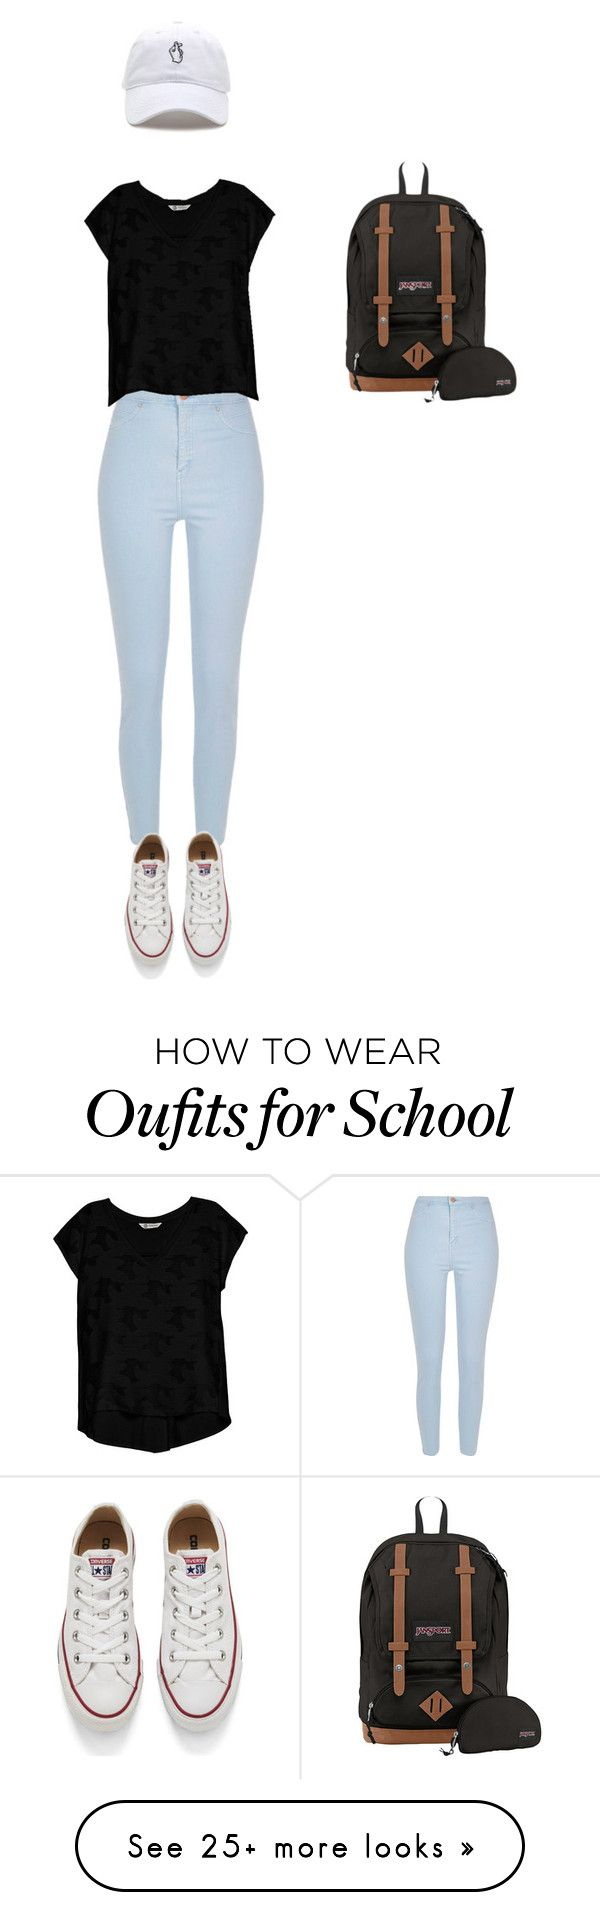 """Casual school"" by emmykang1 on Polyvore featuring River Island, Bobeau, Converse and JanSport"